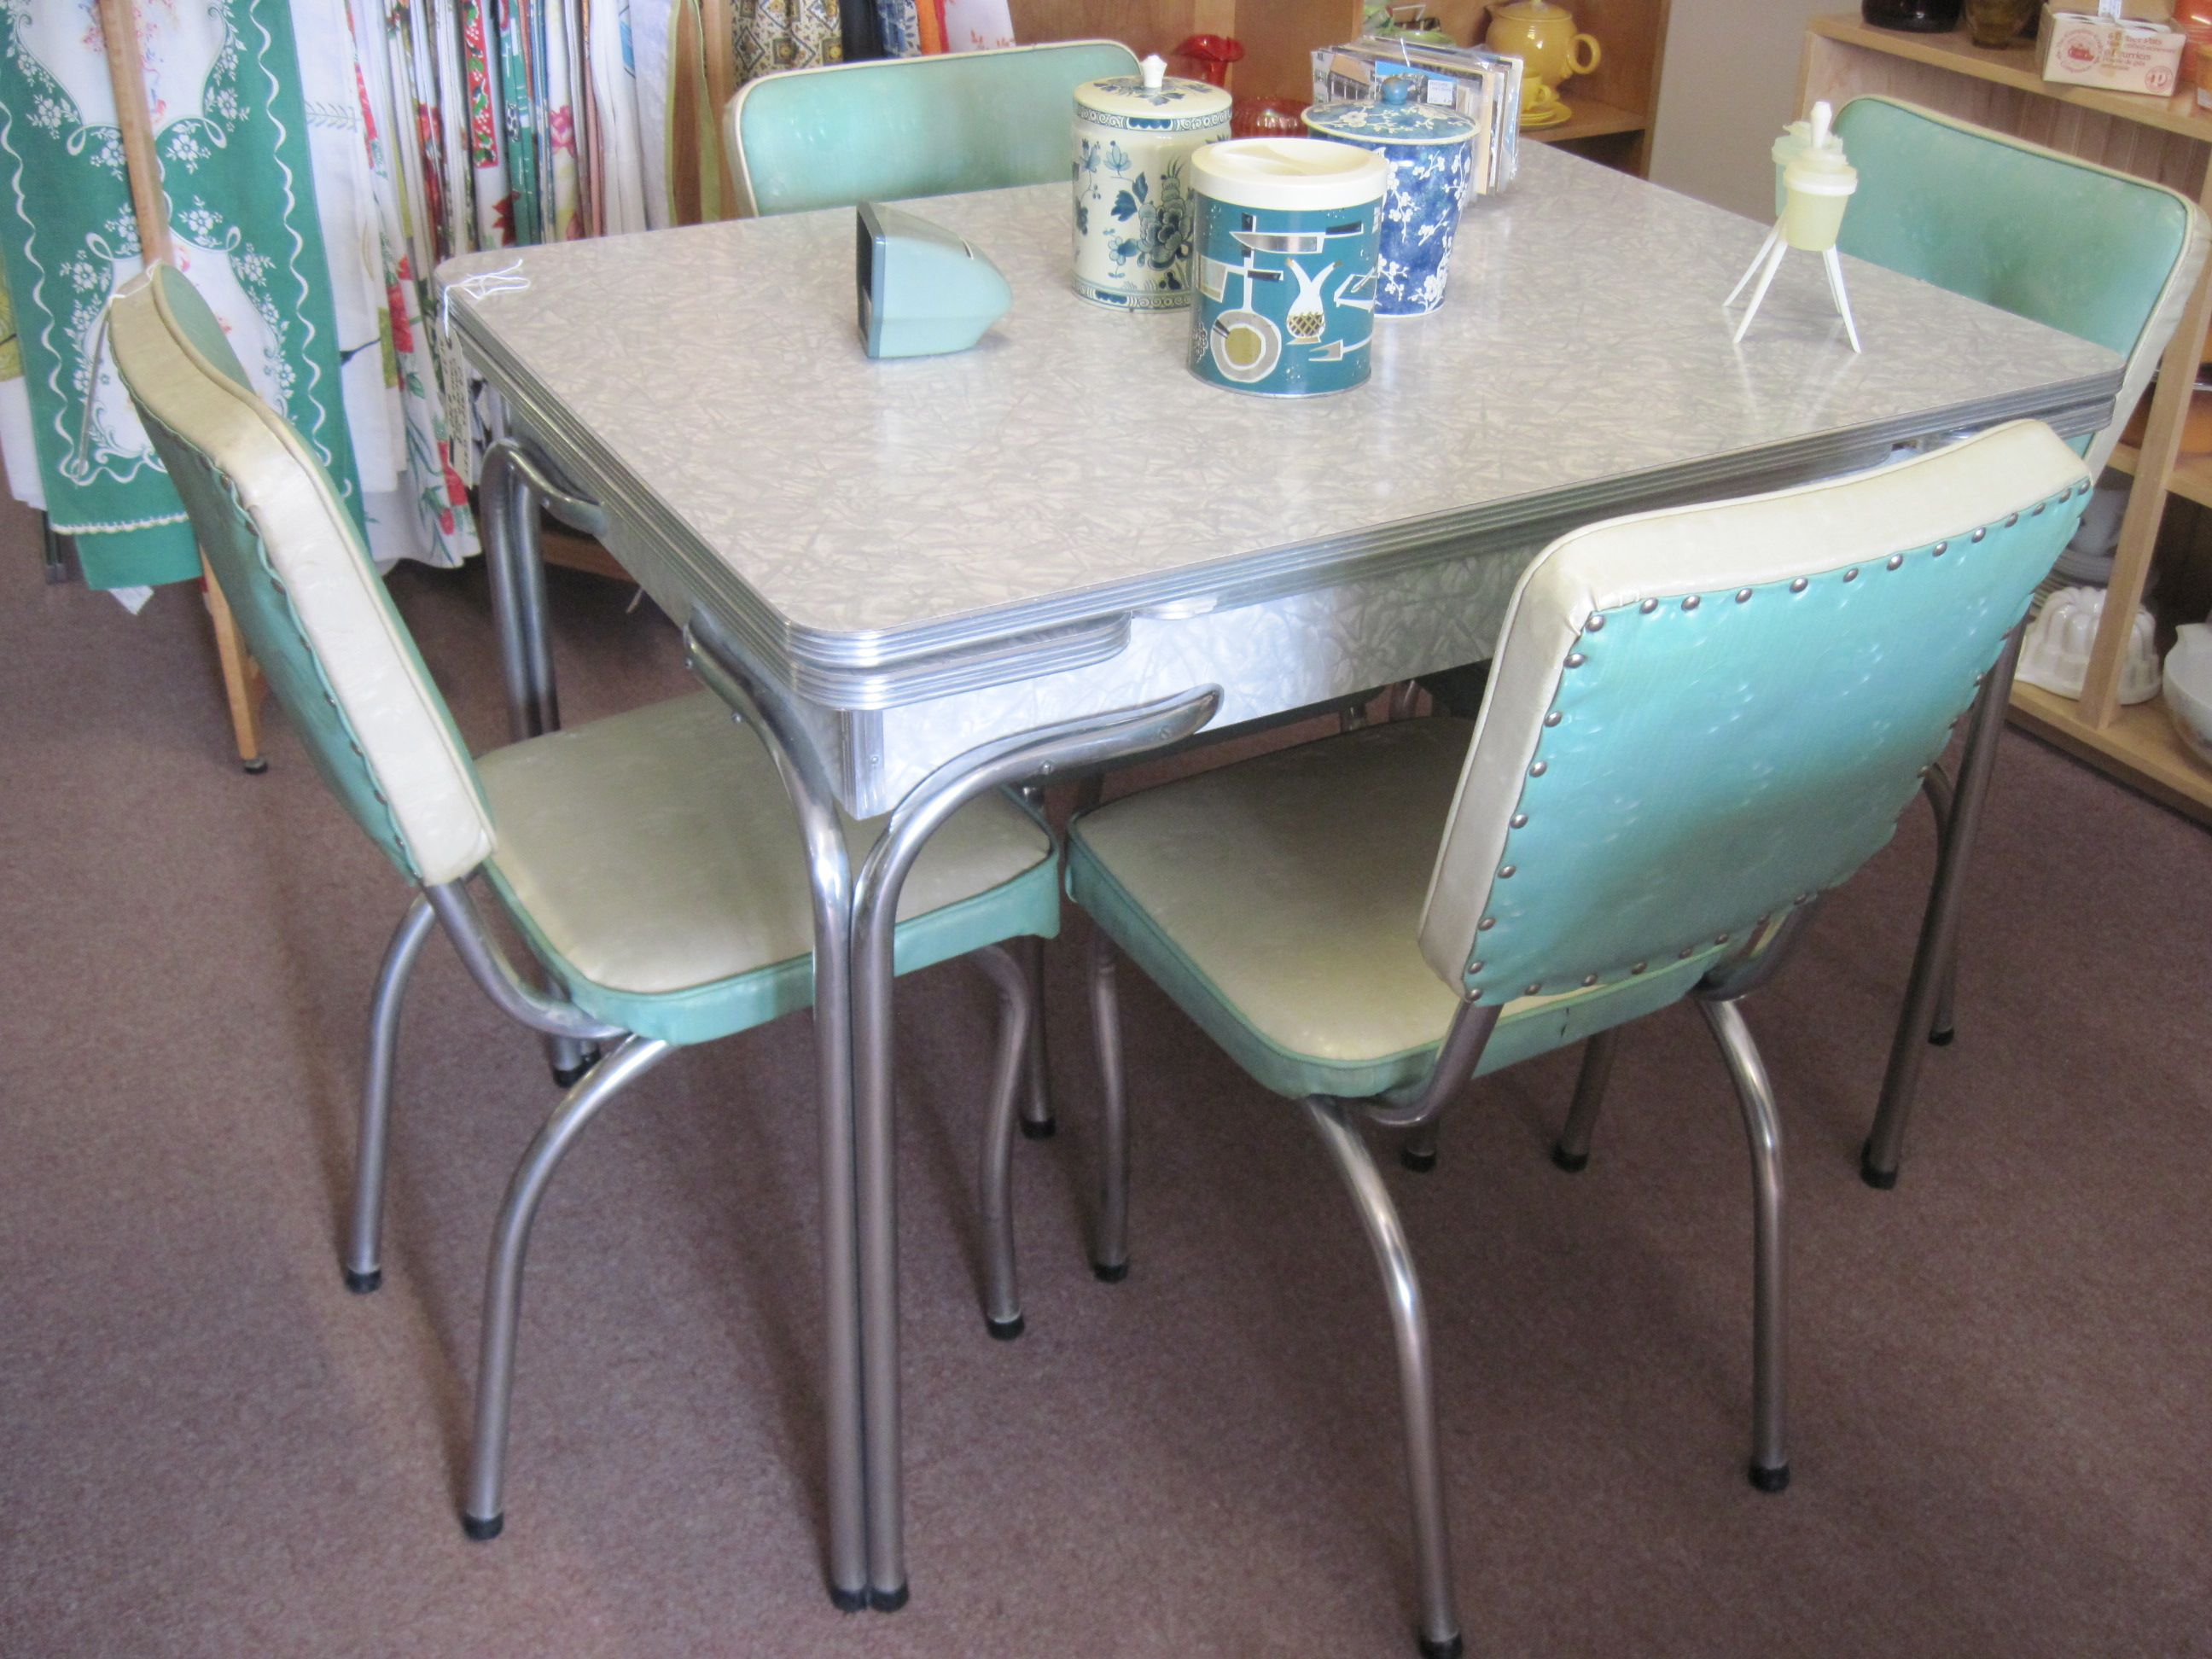 dinette sets retro kitchen chairs Popular Cheap Vintage Dining Room Set New Interior Design Concept Retro Sets Antique With White Table And Chairs Also Soft Blue Backrest With Glass Dining